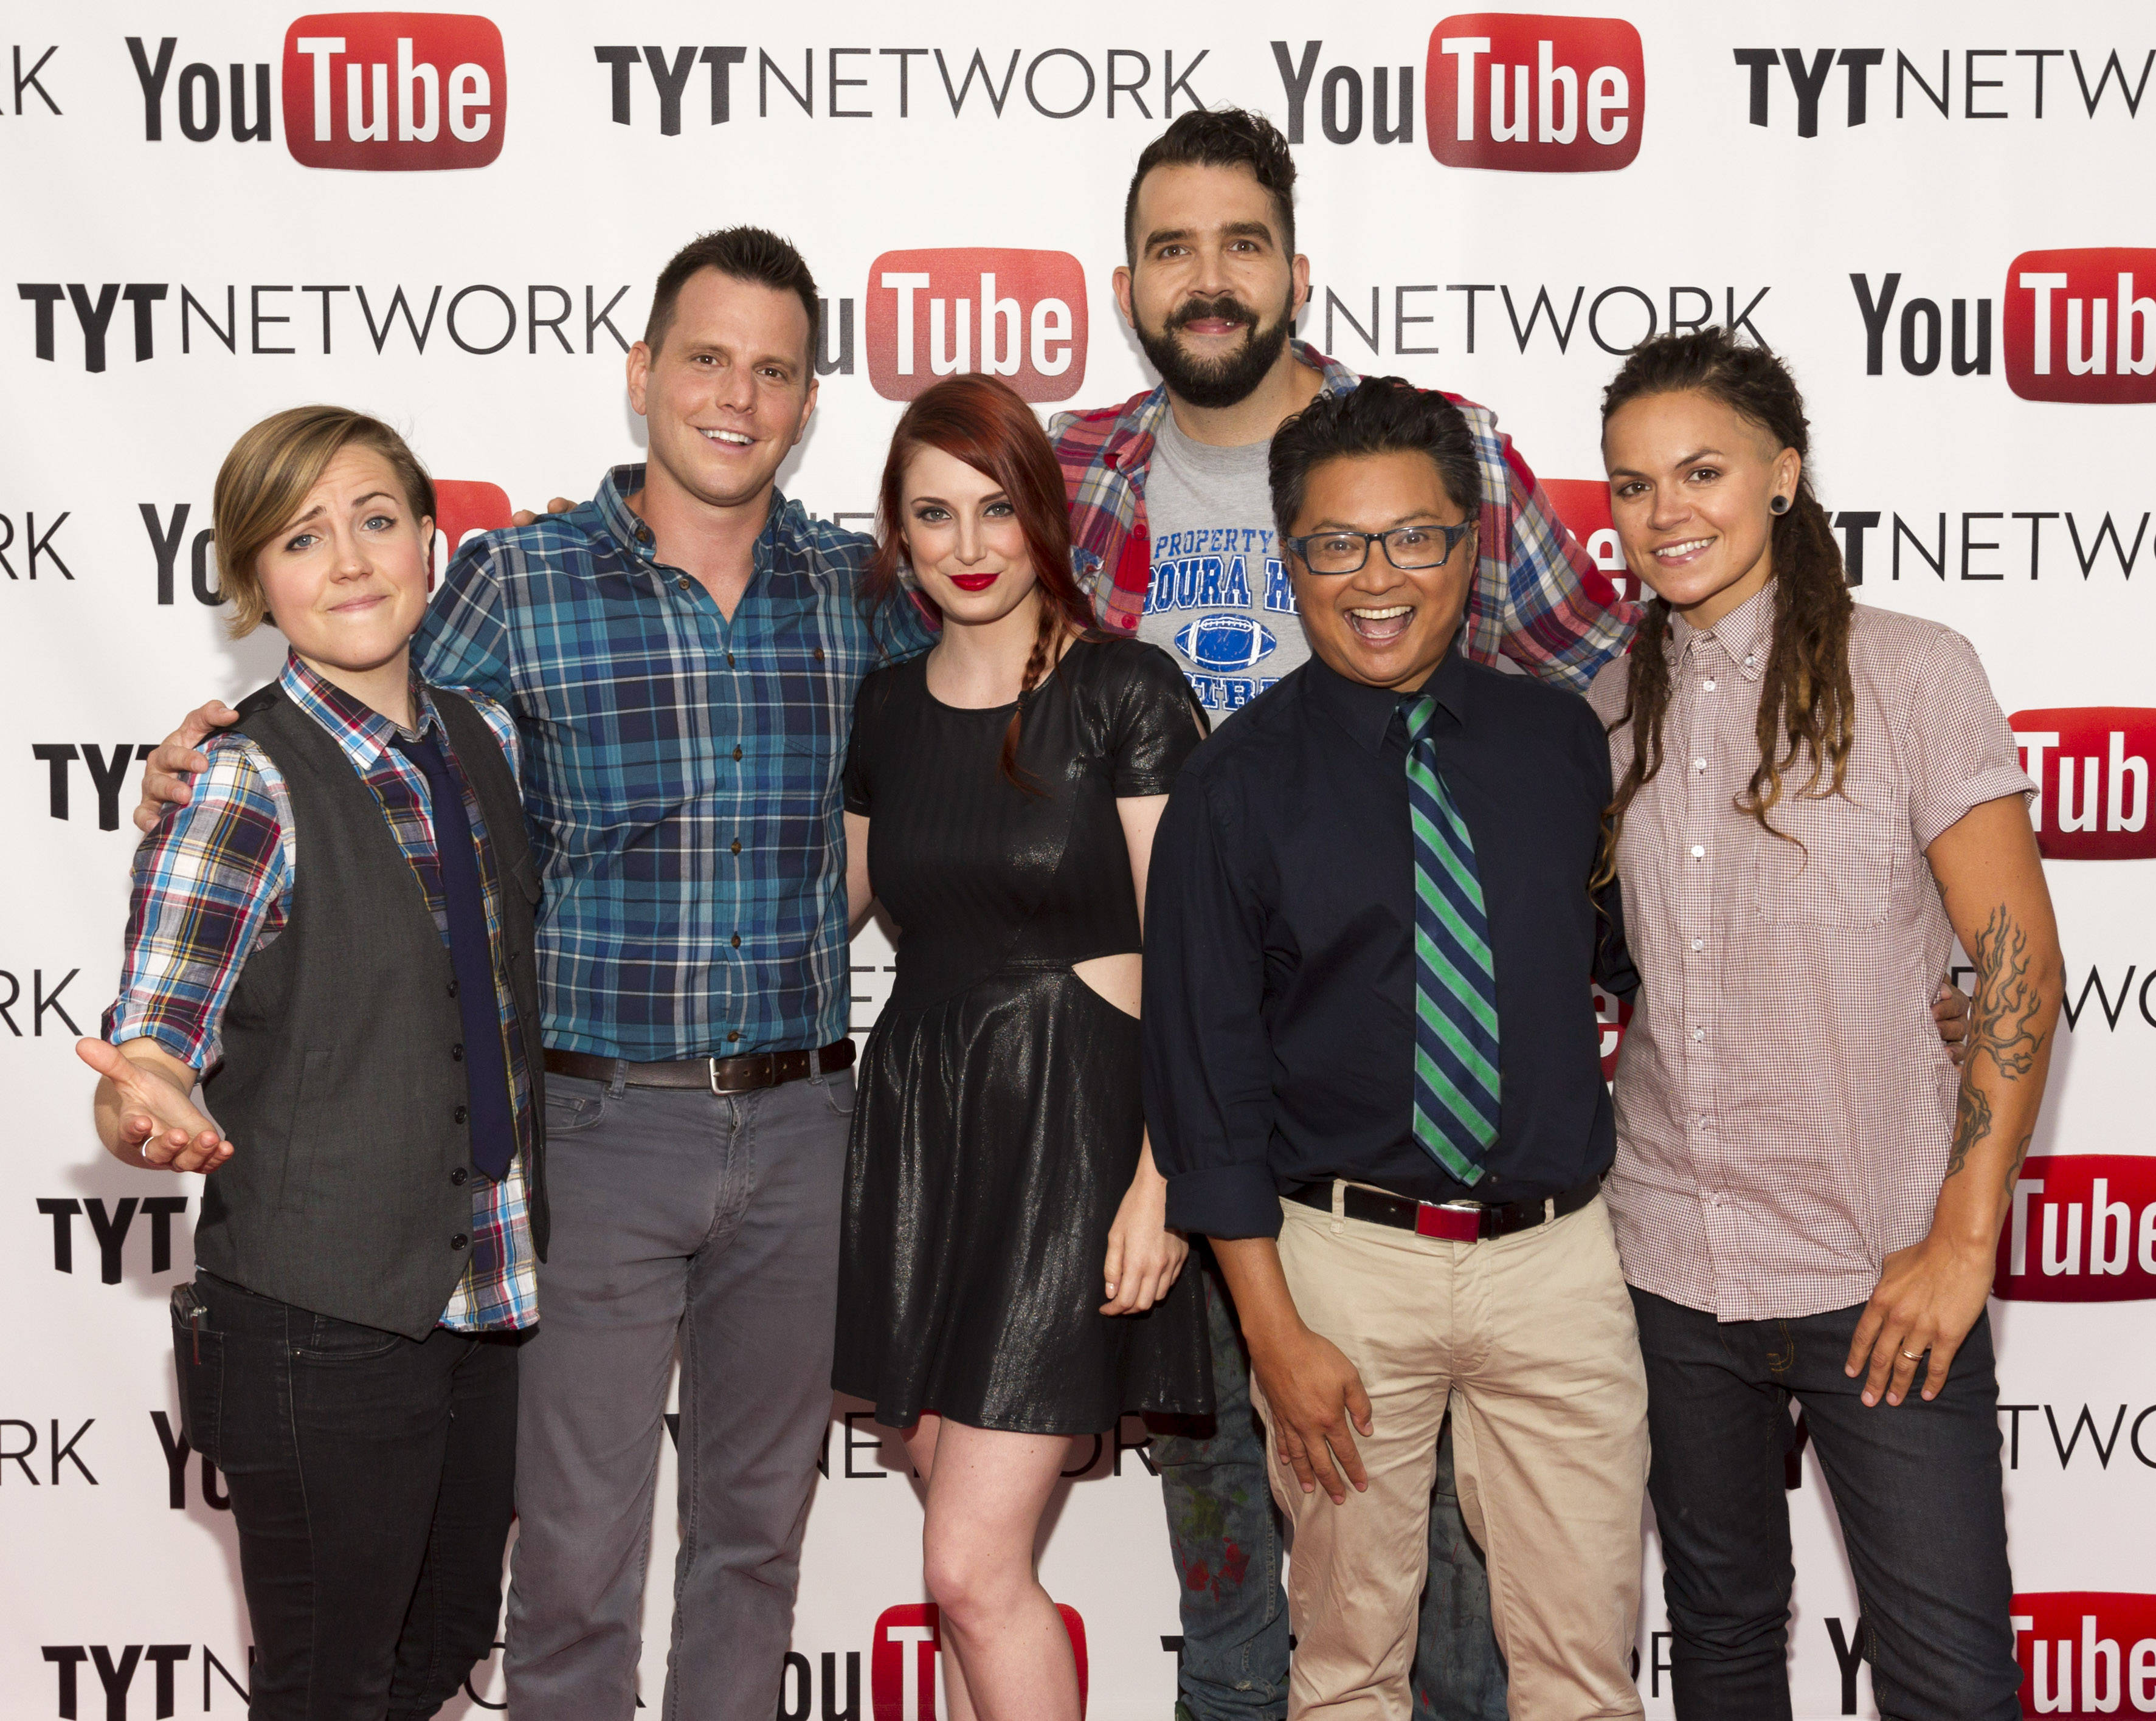 LOS ANGELES, CA - JUNE 27: YouTube talent Hannah Hart, comedian Dave Rubin, actress Bree Essrig and YouTube talents Jonny McGovern, Alec Mapa and Whitney Mixter arrive at the YouTube & TYTNetwork PRIDE Party on June 27, 2013 in Los Angeles, California. (Photo by Rich Polk/Getty Images for YouTube)